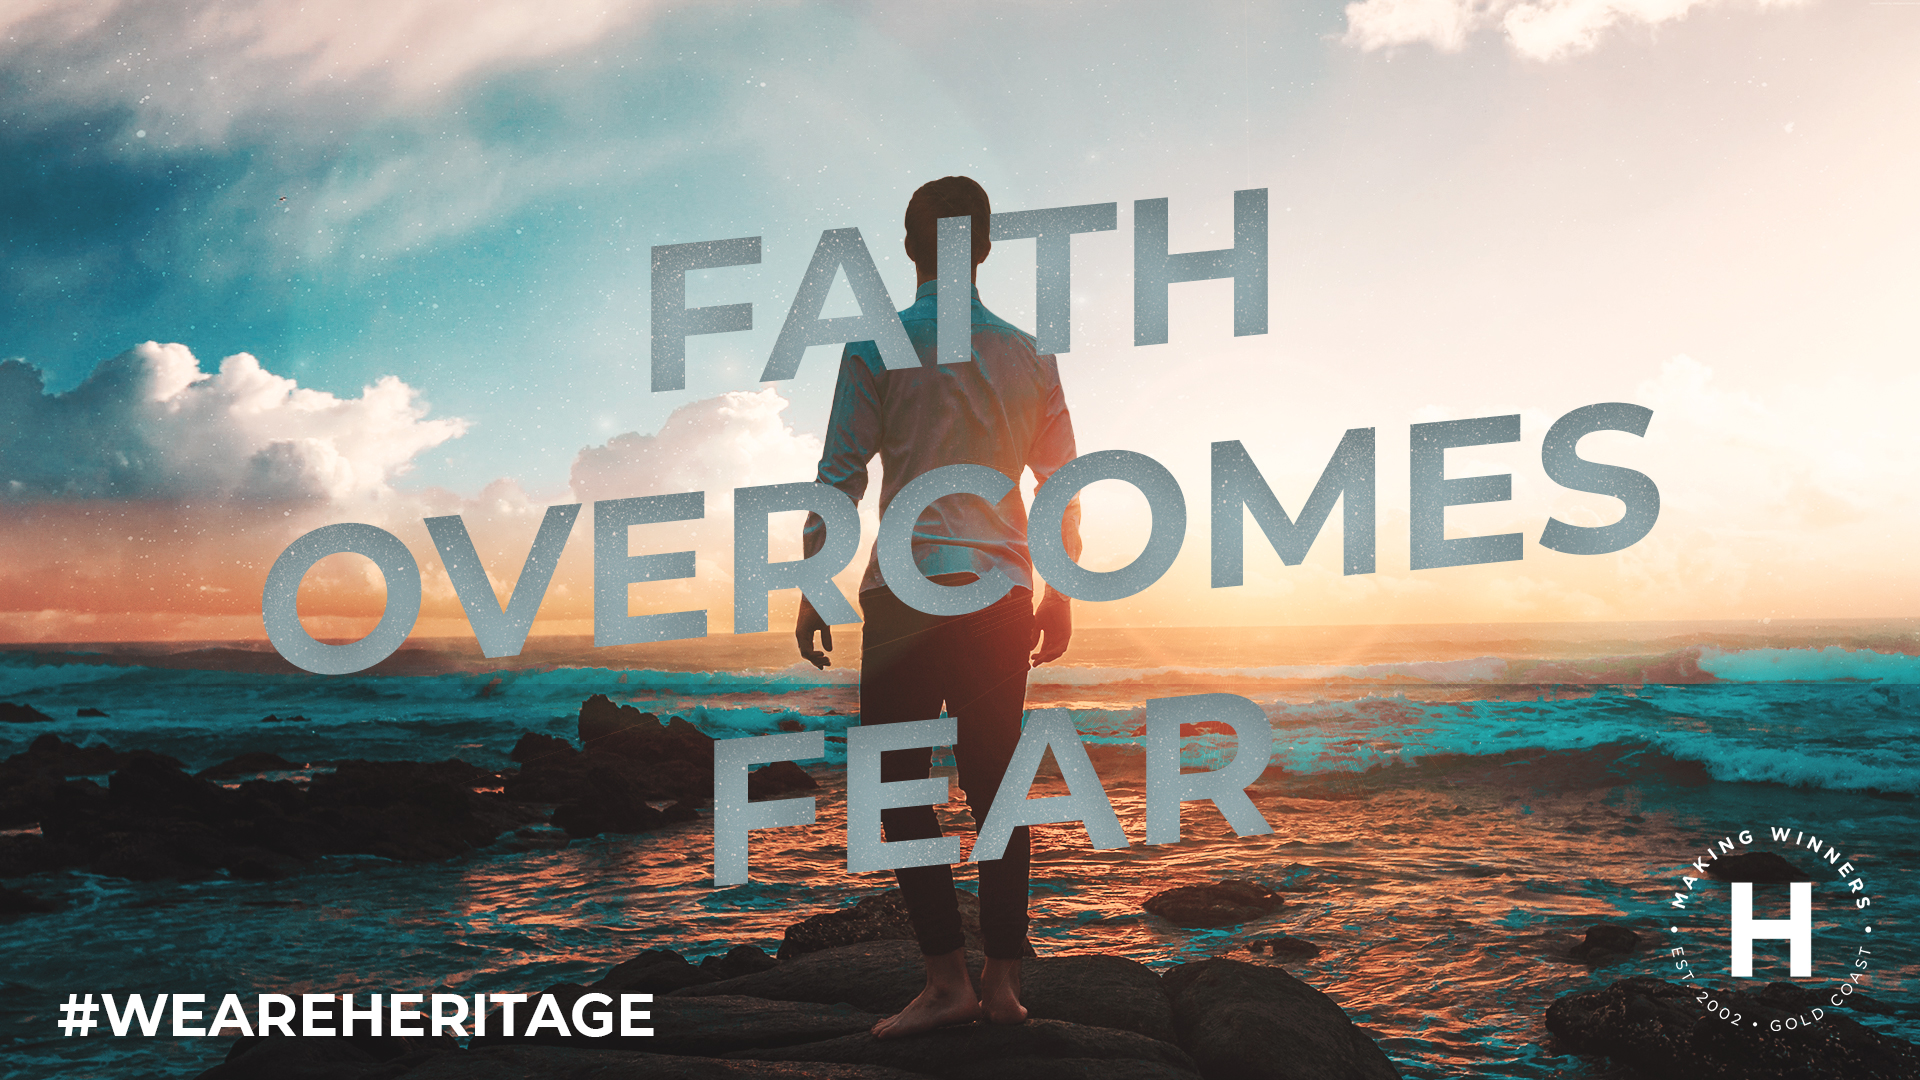 Faith Overcomes Fear